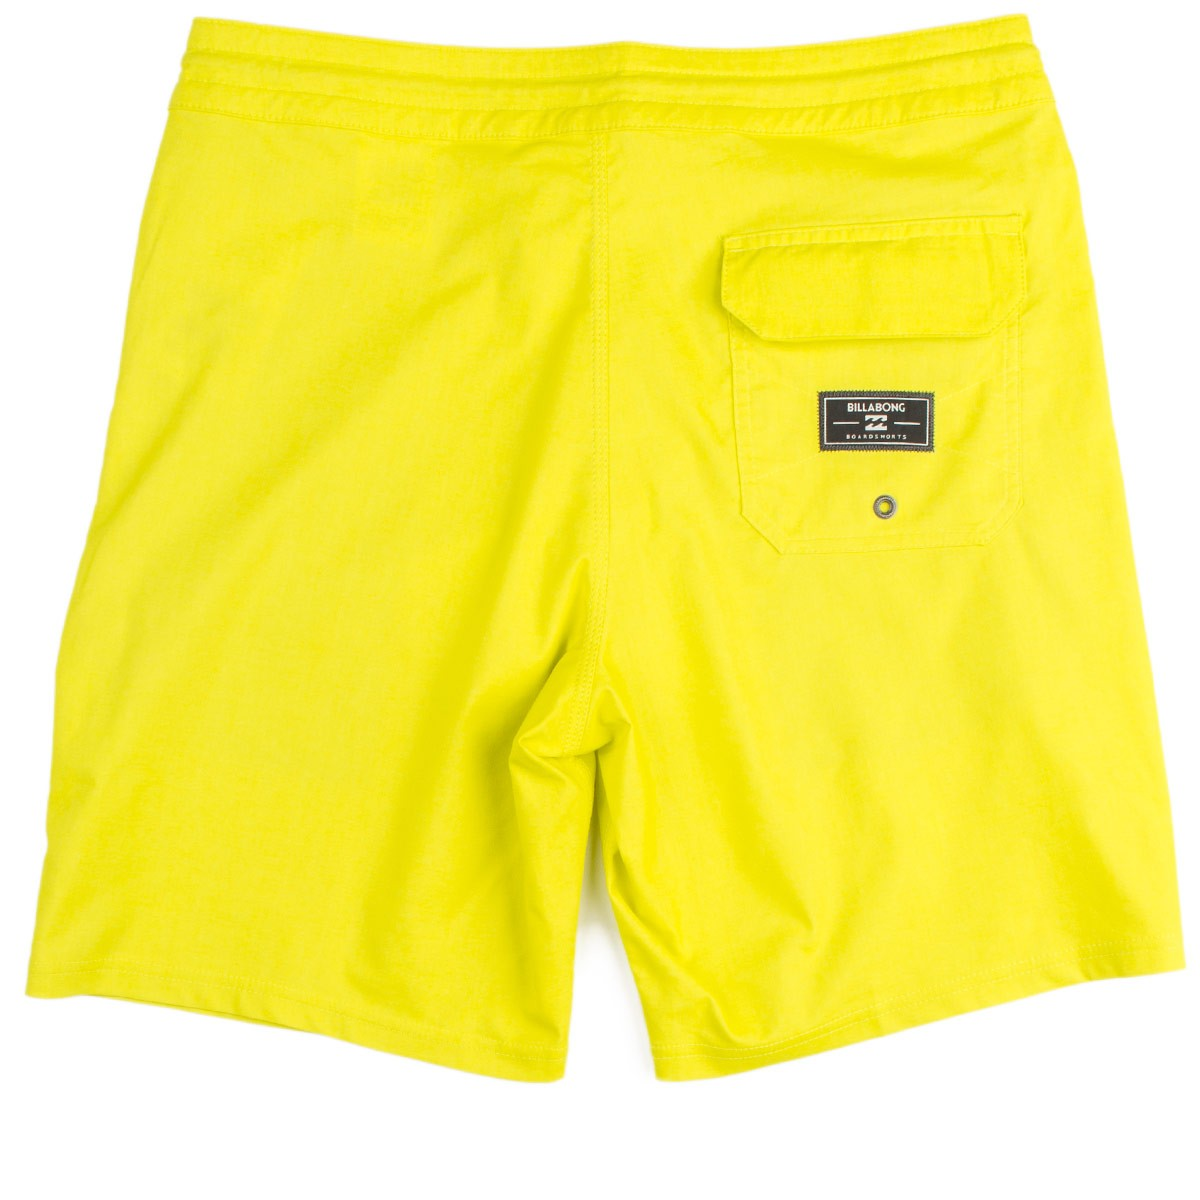 billabong-all-day-lo-tides-boardshorts-neo-lime-2.1507543792.jpg c0be7d3f3